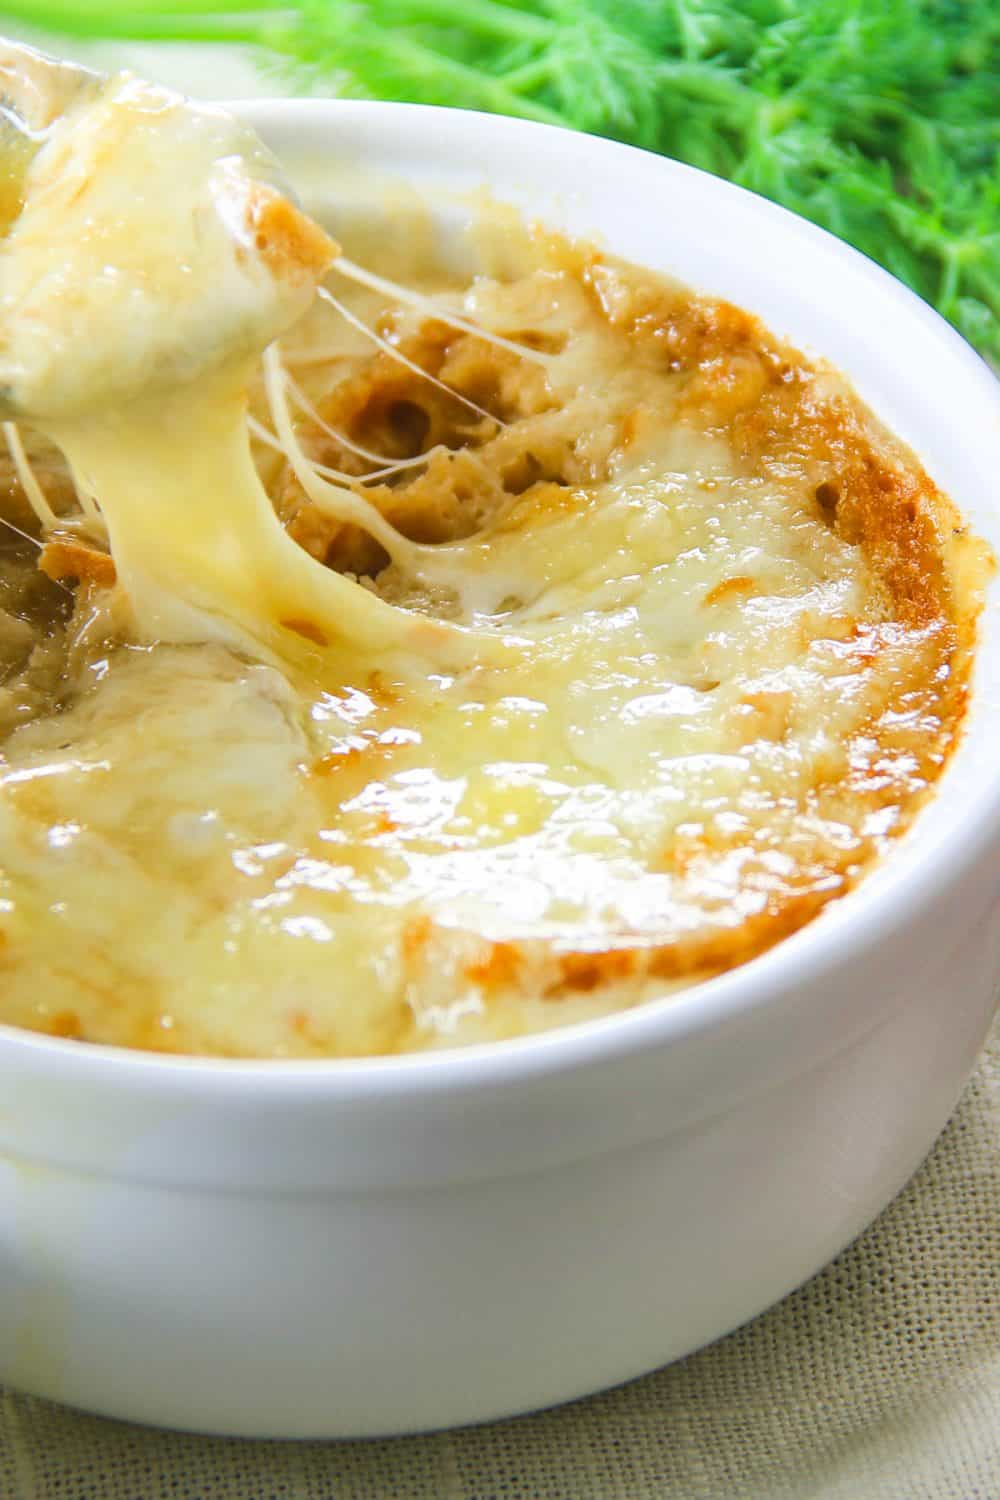 A close up of a cheese pull showing the broiled cheese on top of the french onion soup.